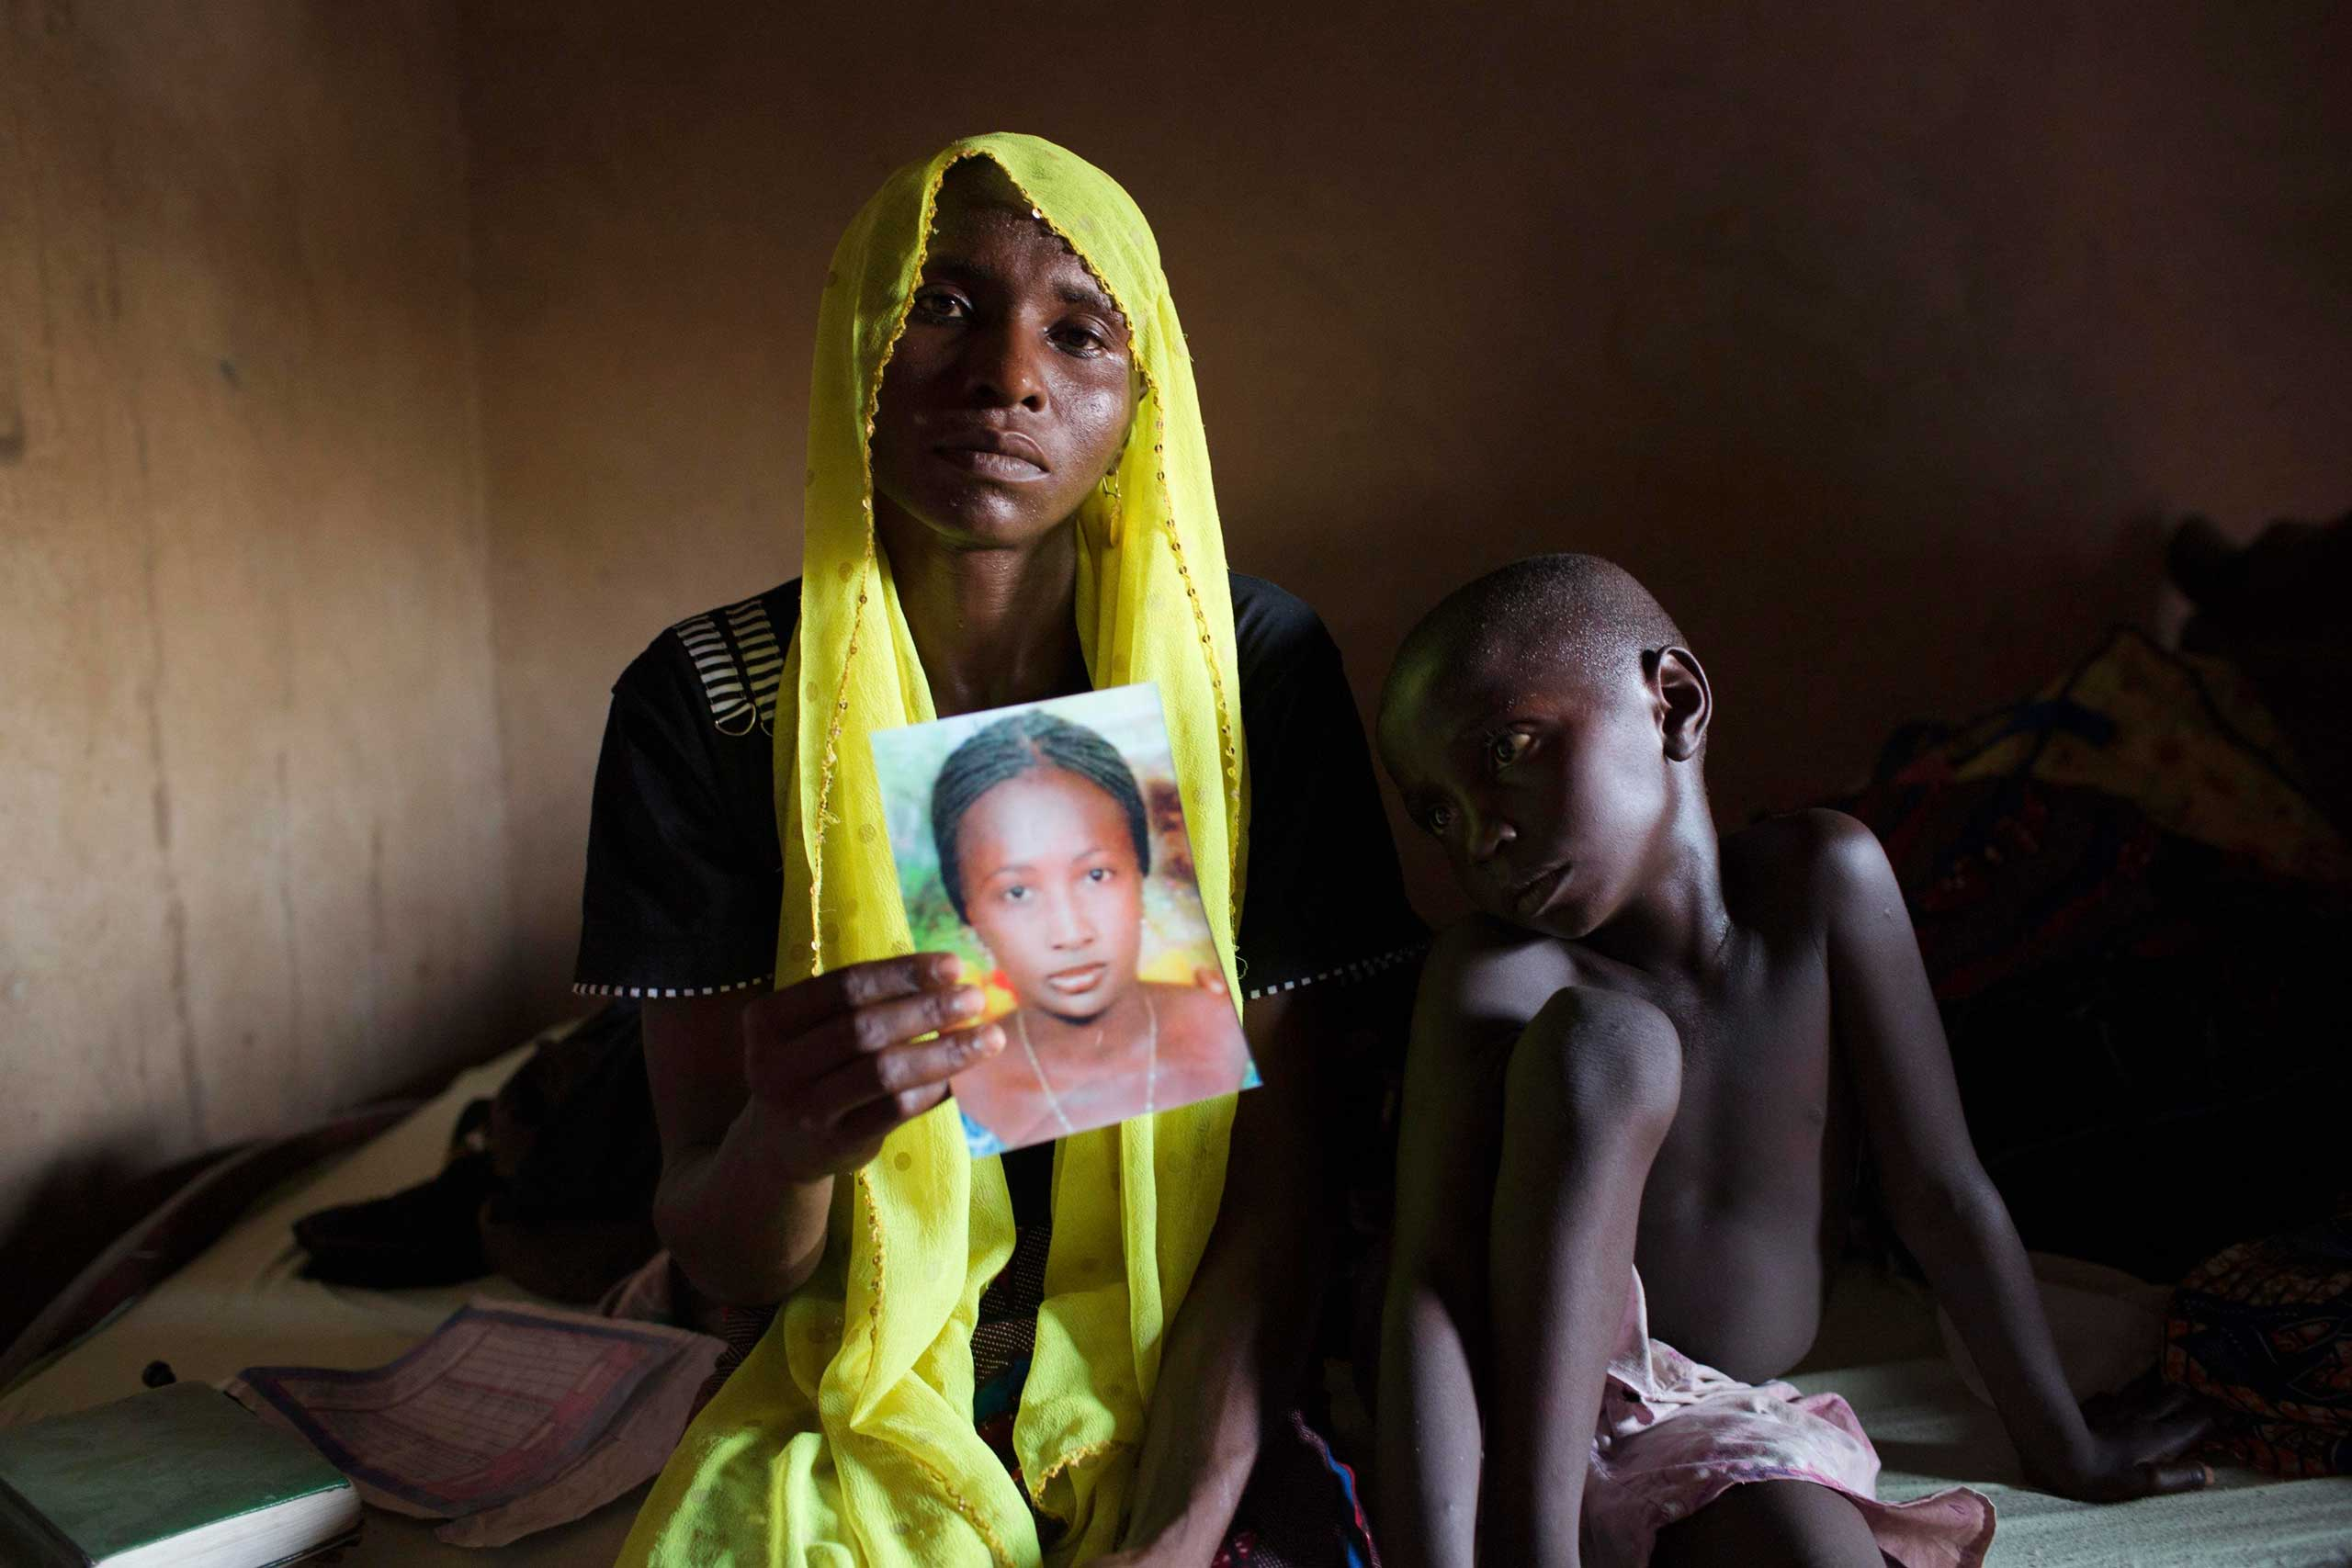 Rachel Daniel, 35, holds up a picture of her abducted daughter Rose Daniel, 17, as her son Bukar, 7, sits beside her at her home in Maiduguri, May 21, 2014. Boko Haram kidnapped an additional 30 boys and girls from a village in northeast Nigeria during the weekend.